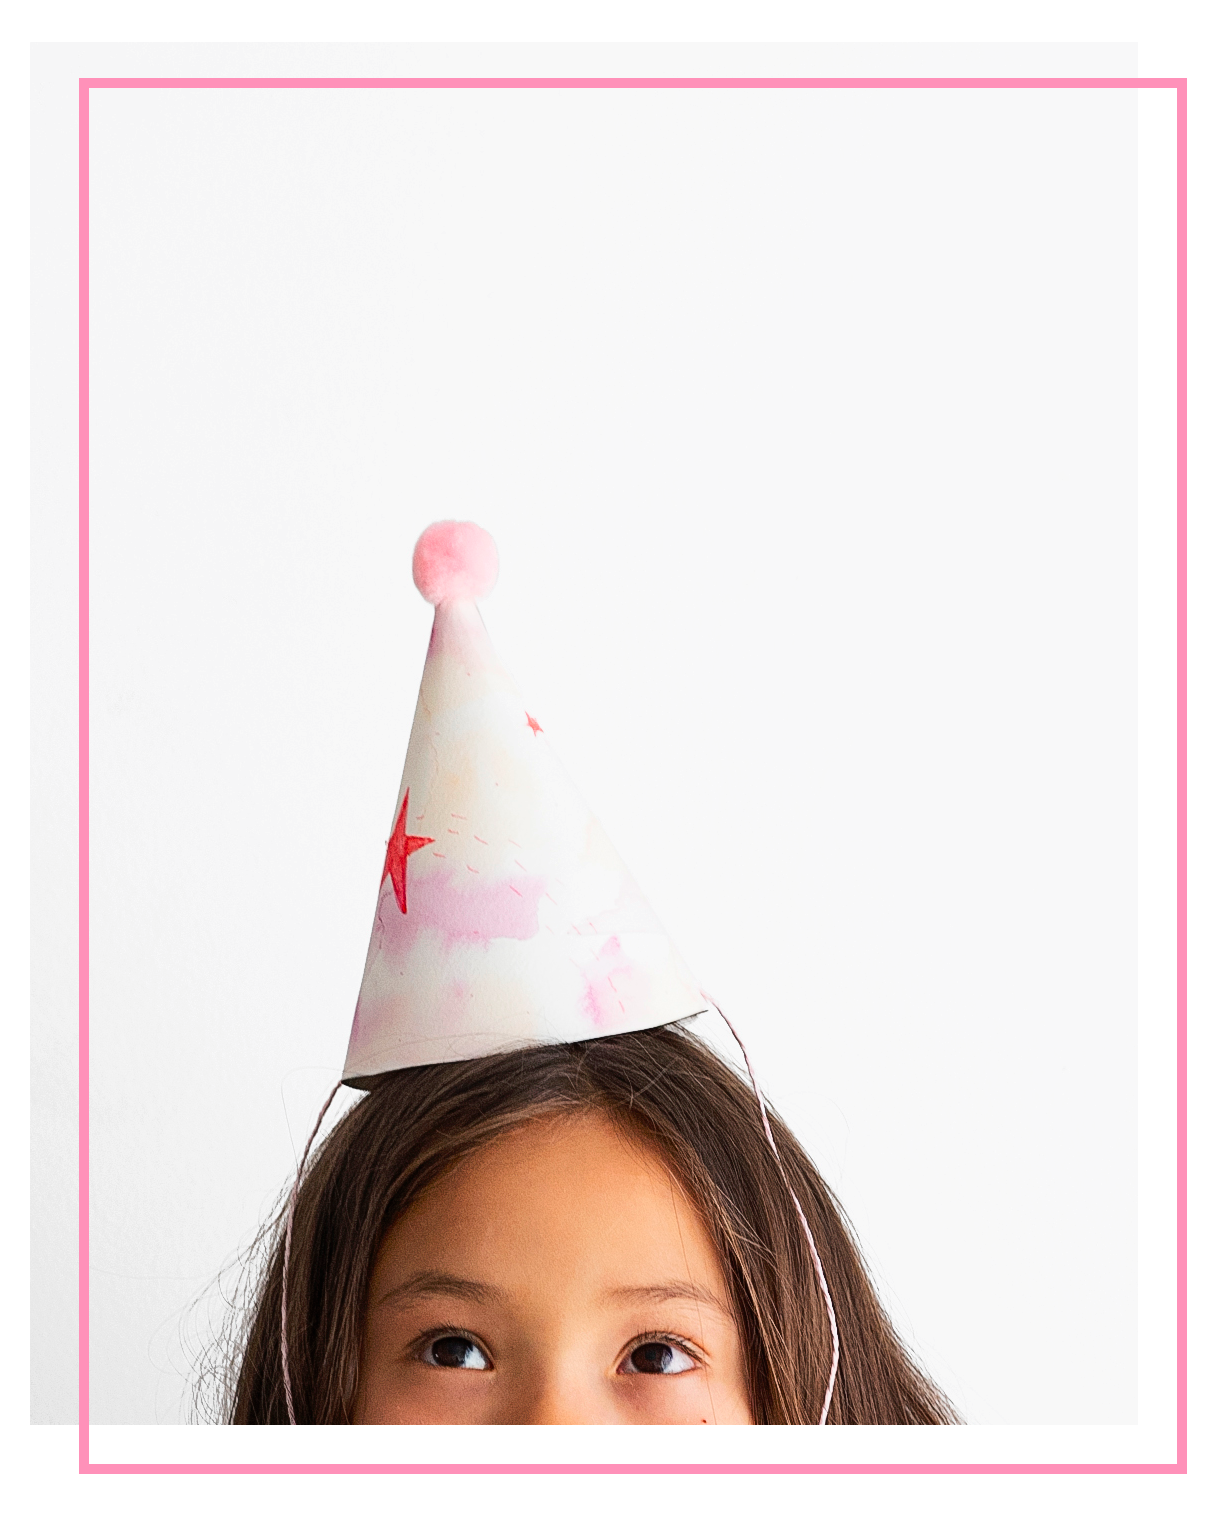 PARTY, PARTY,PARTY! - We love to party! Make something fun with your mini makers at your next celebration. New ROW DTLA location available for events and parties!